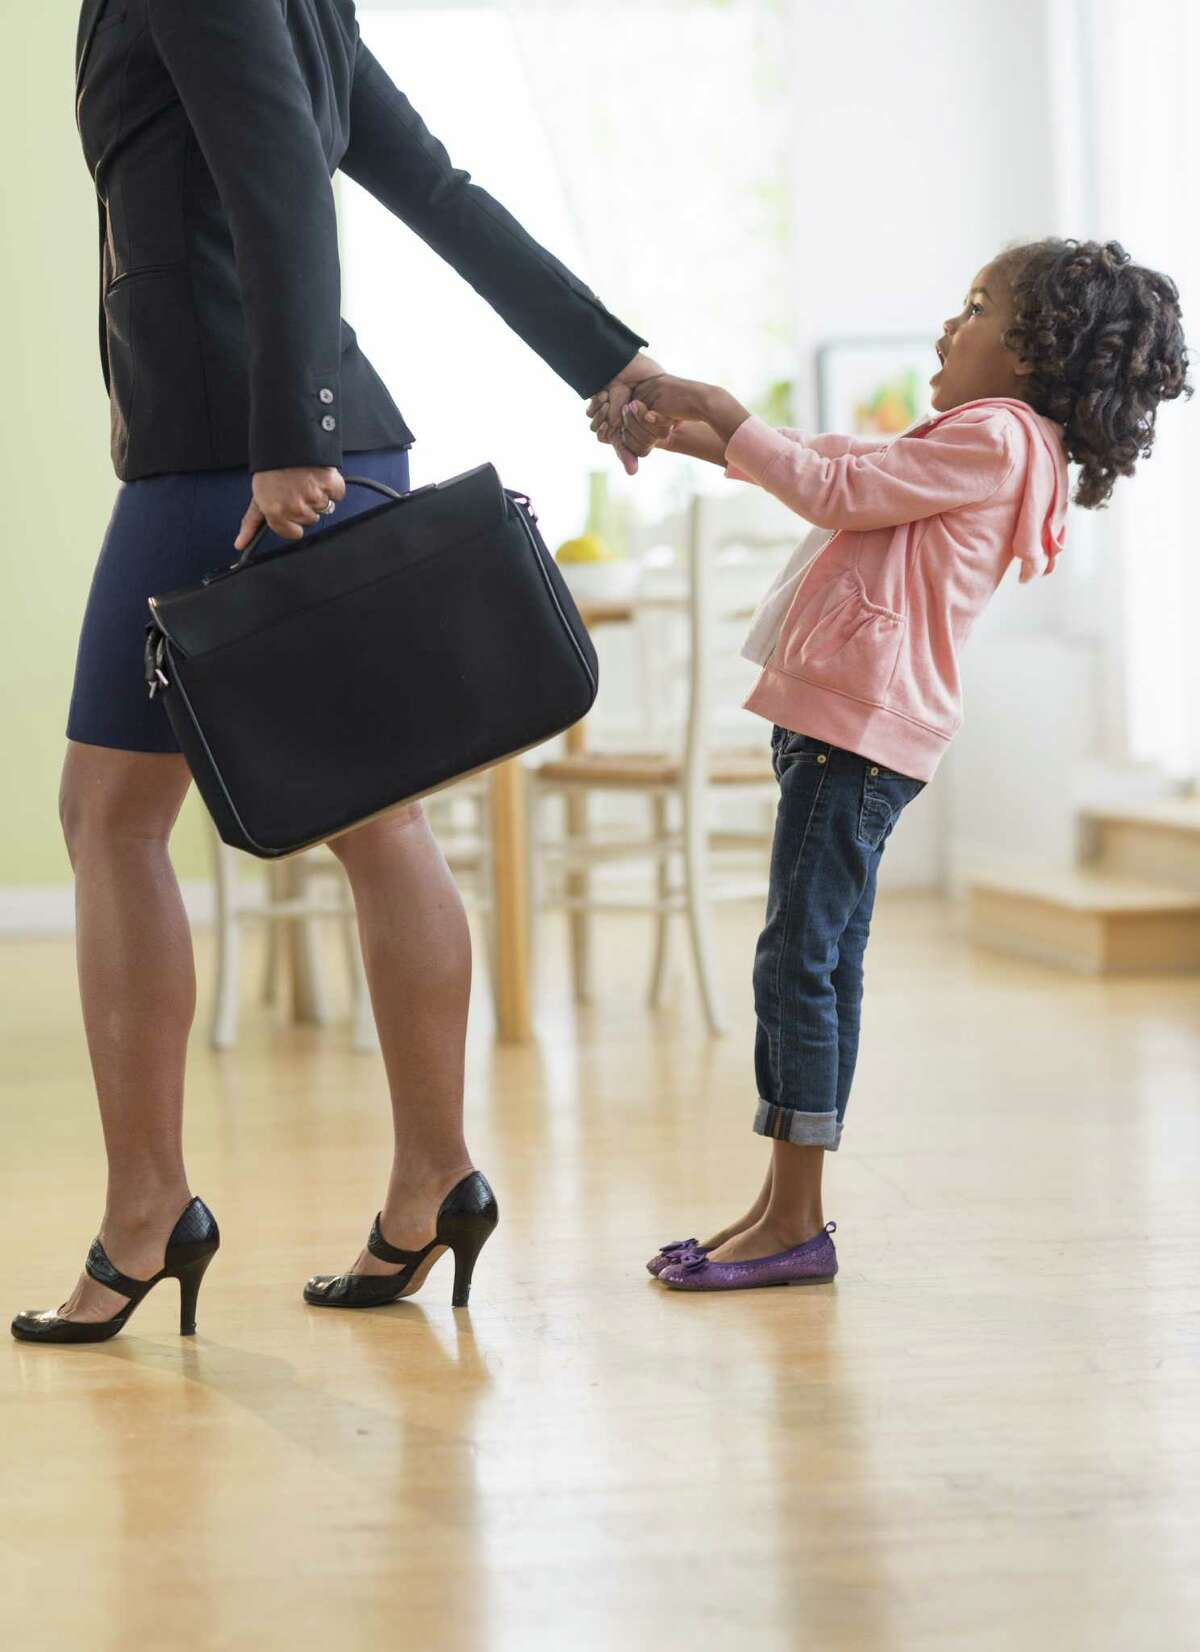 If you're a girl and your mom works, you're more likely to become the boss and make more money.